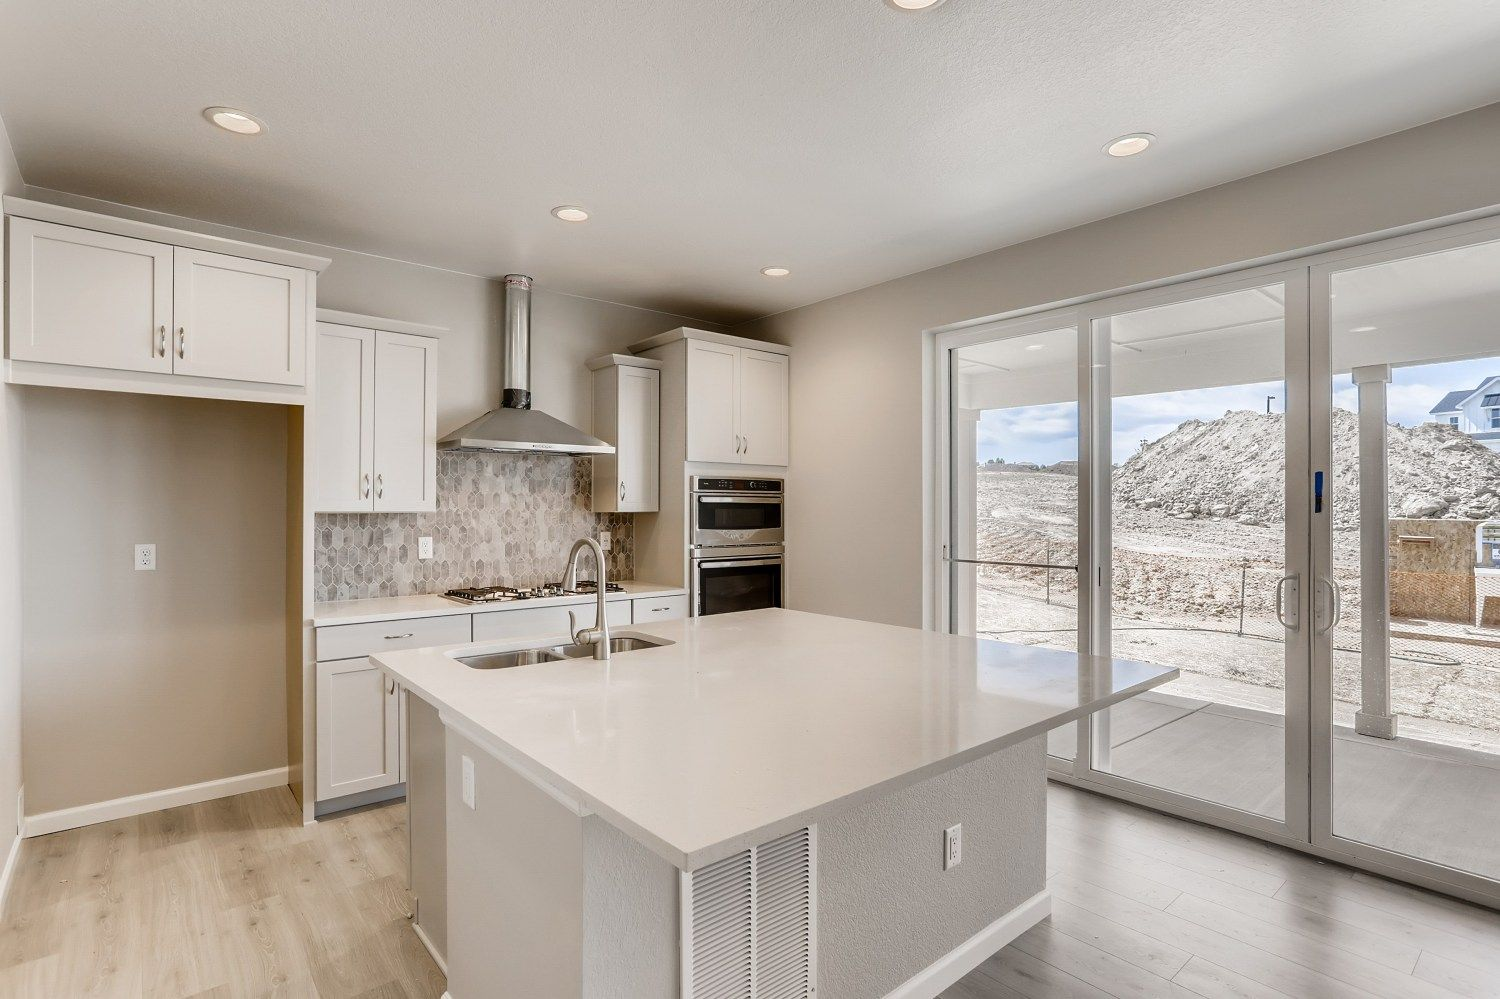 Kitchen featured in the Cortez By Taylor Morrison in Denver, CO